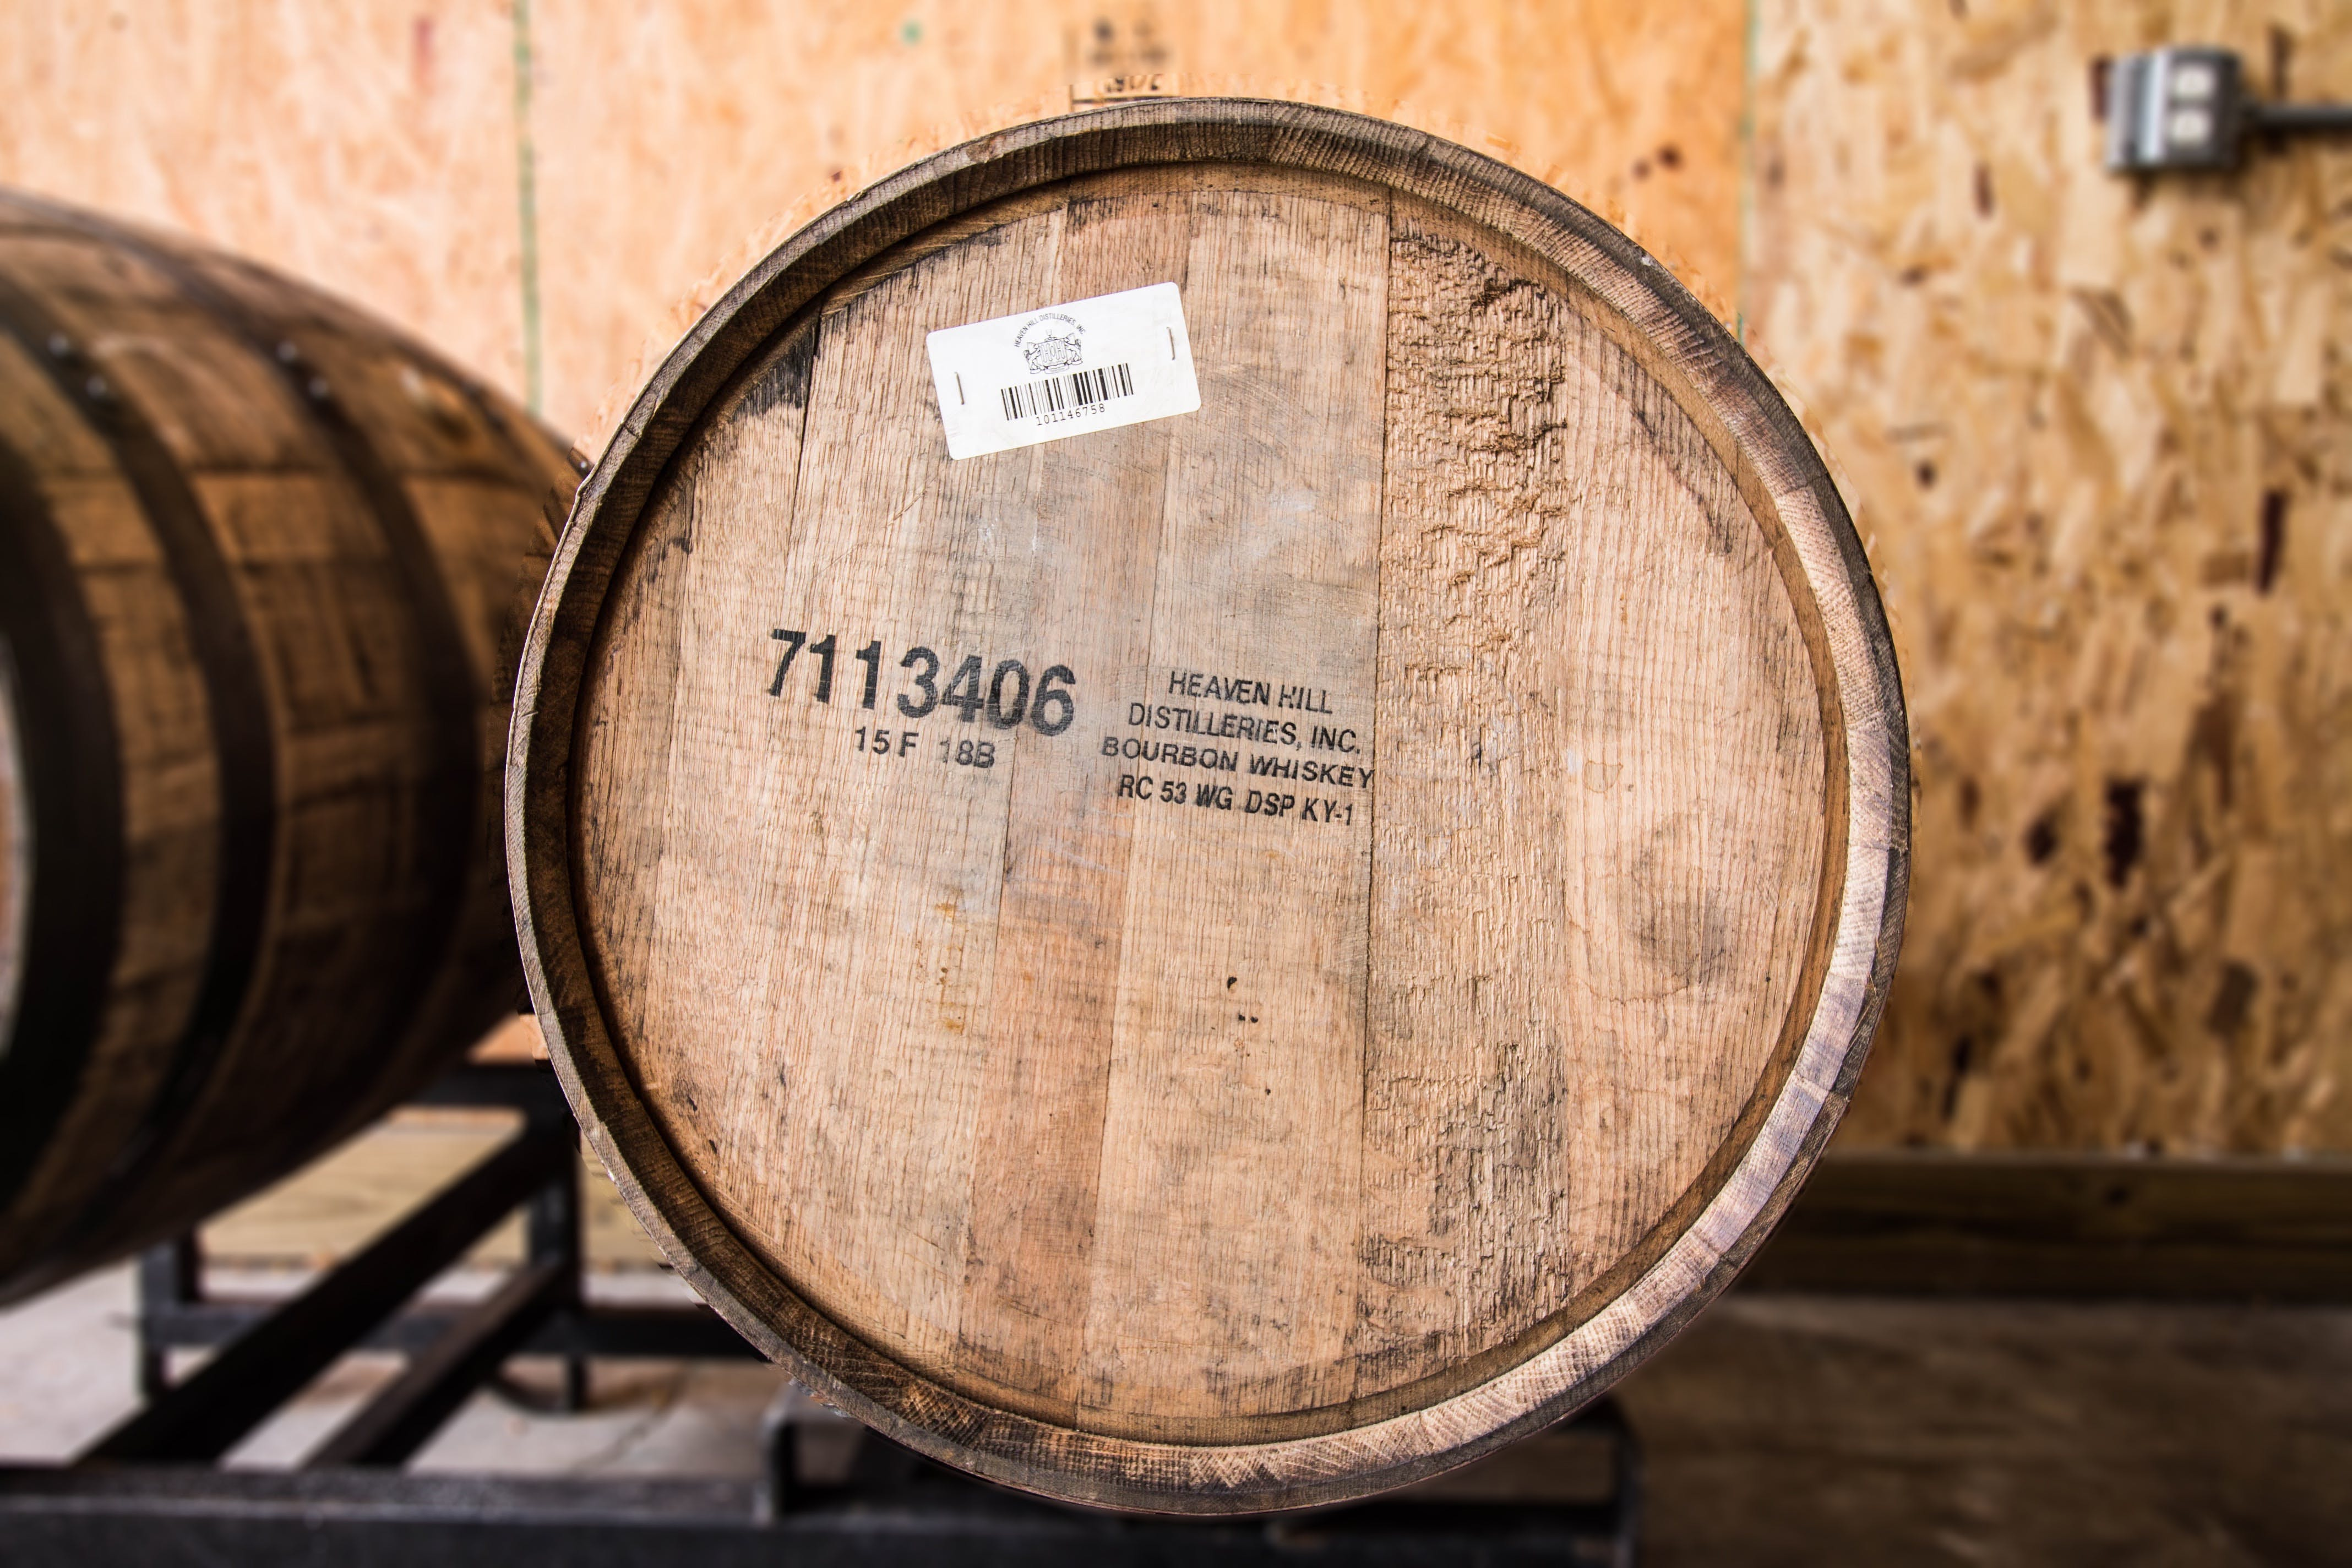 Fresh-Dumped, Once-Used Heaven Hill Barrel - sold by Midwest Barrel Company